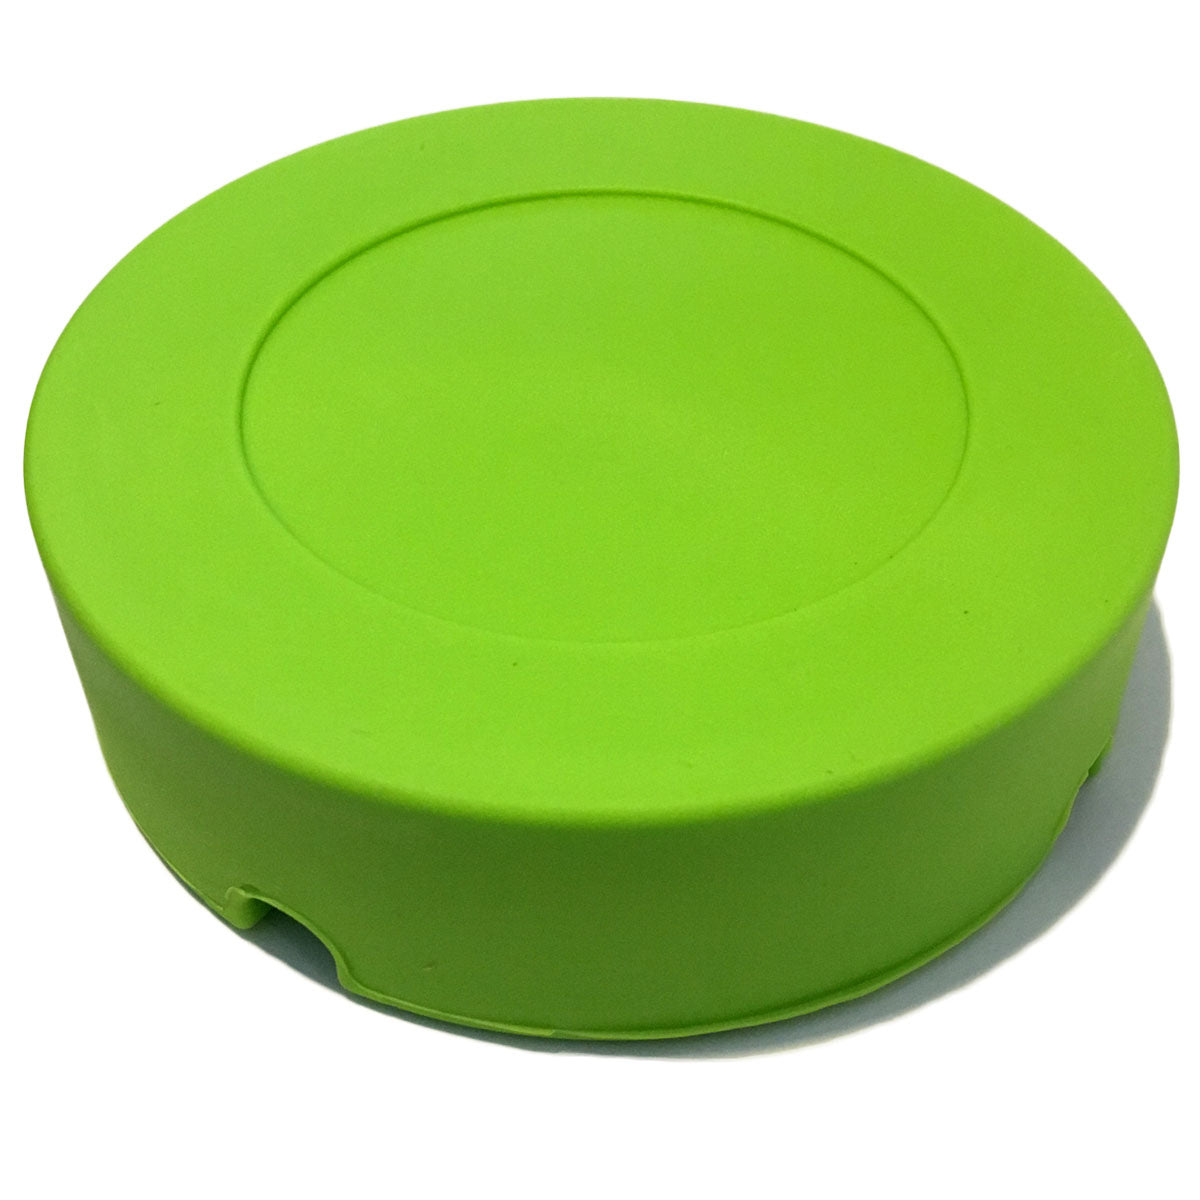 Round Silicone Ashtray - Green - Green Goddess Supply